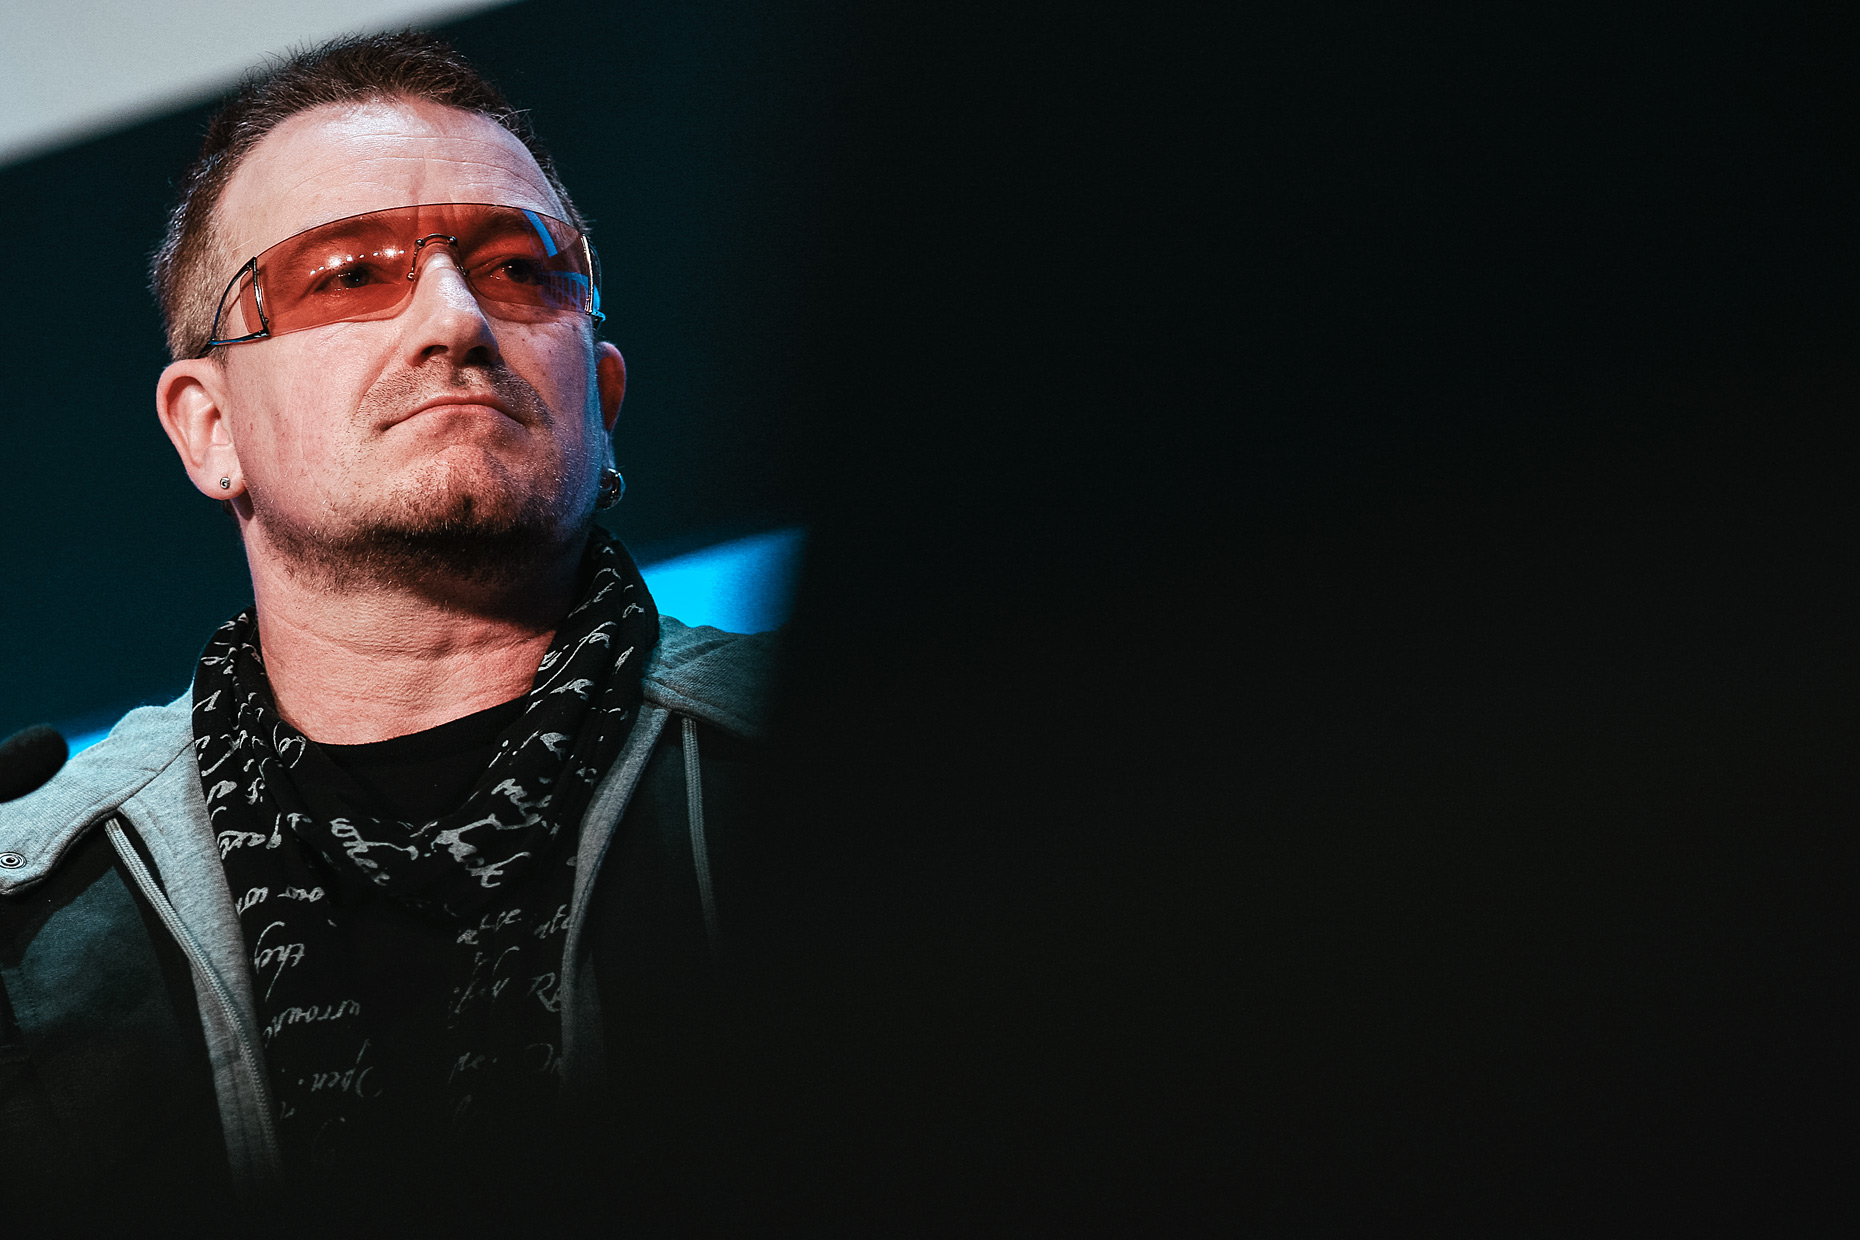 Bono - World Economic Forum Annual Meeting, Davos - Switzerland